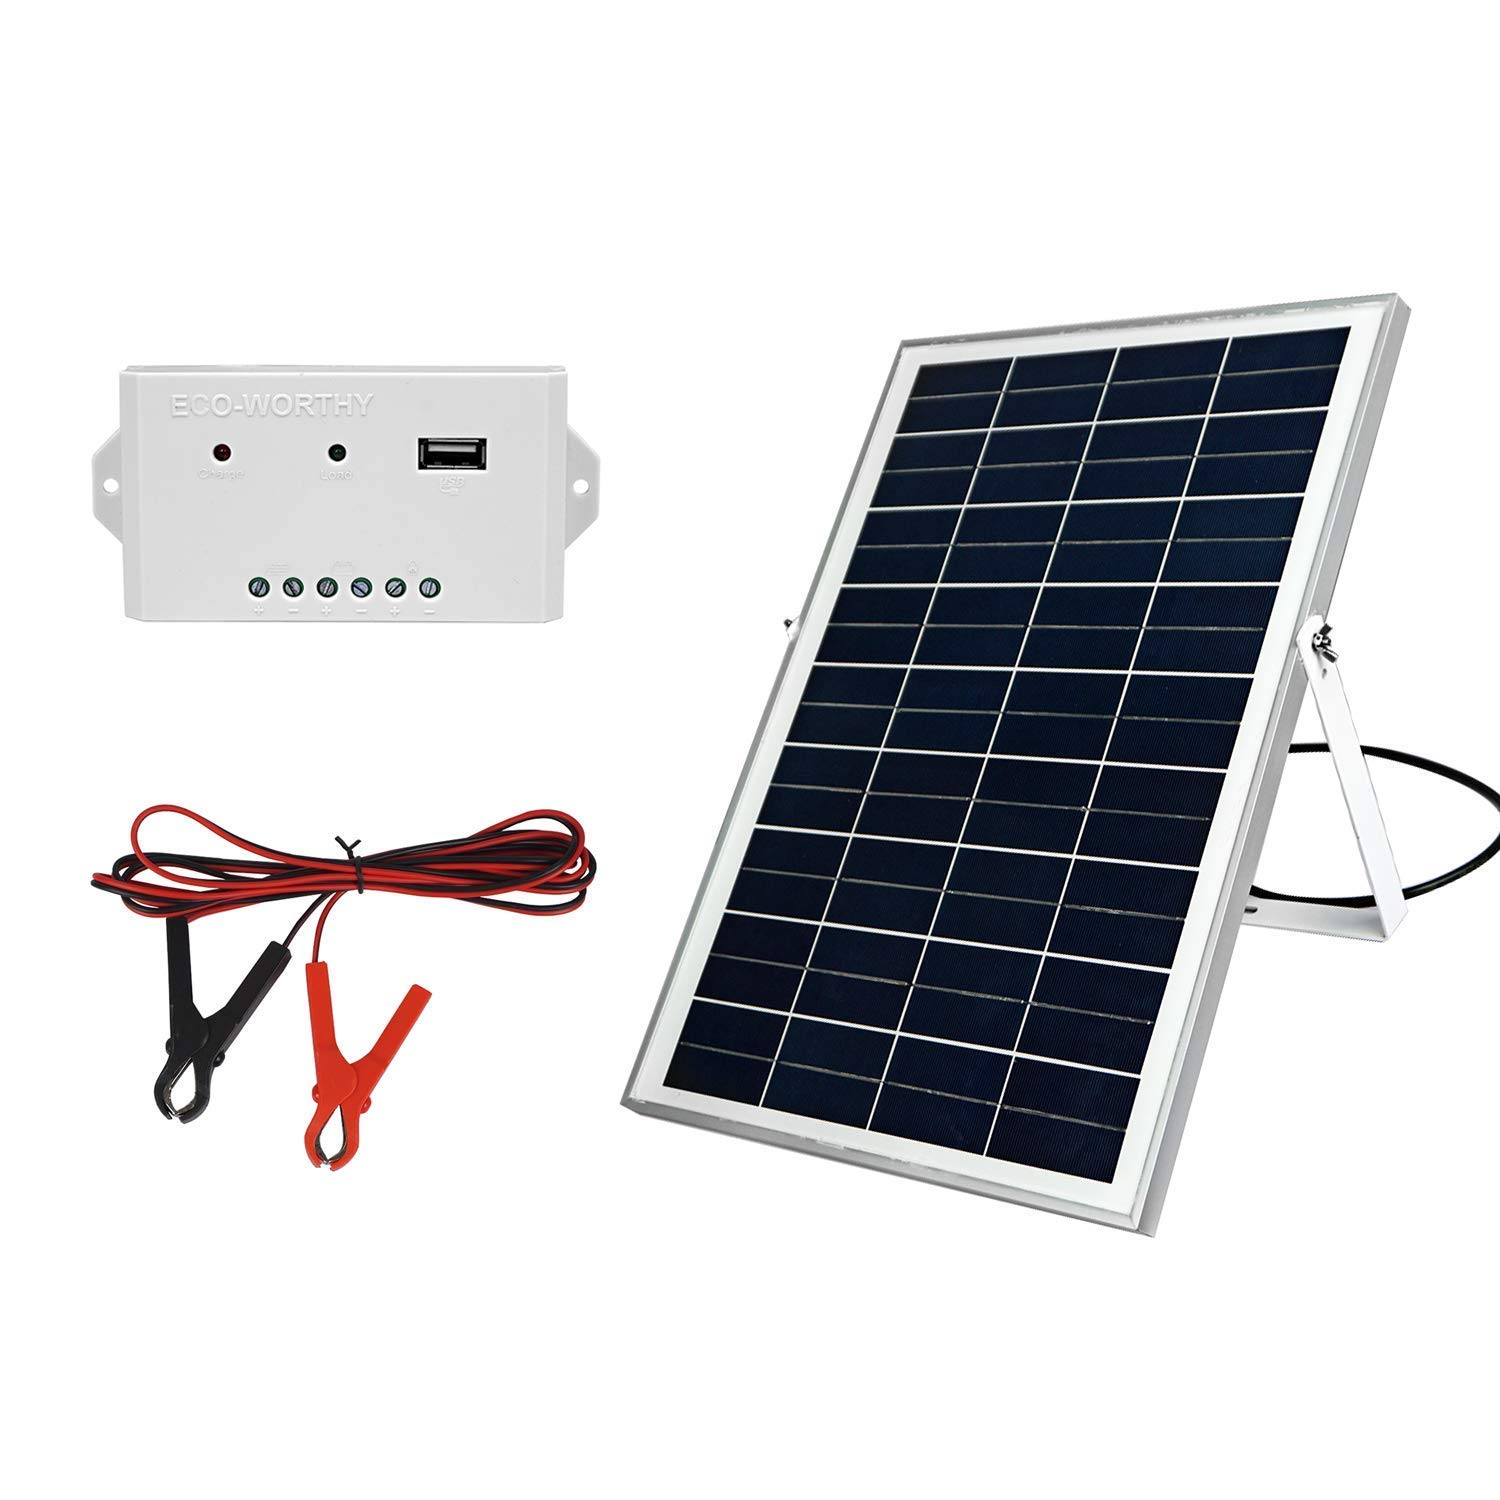 ECO-WORTHY 25W 18Volts Solar Panel Kits: 25W Solar Panel with U Bracket + 3A Charge Controller